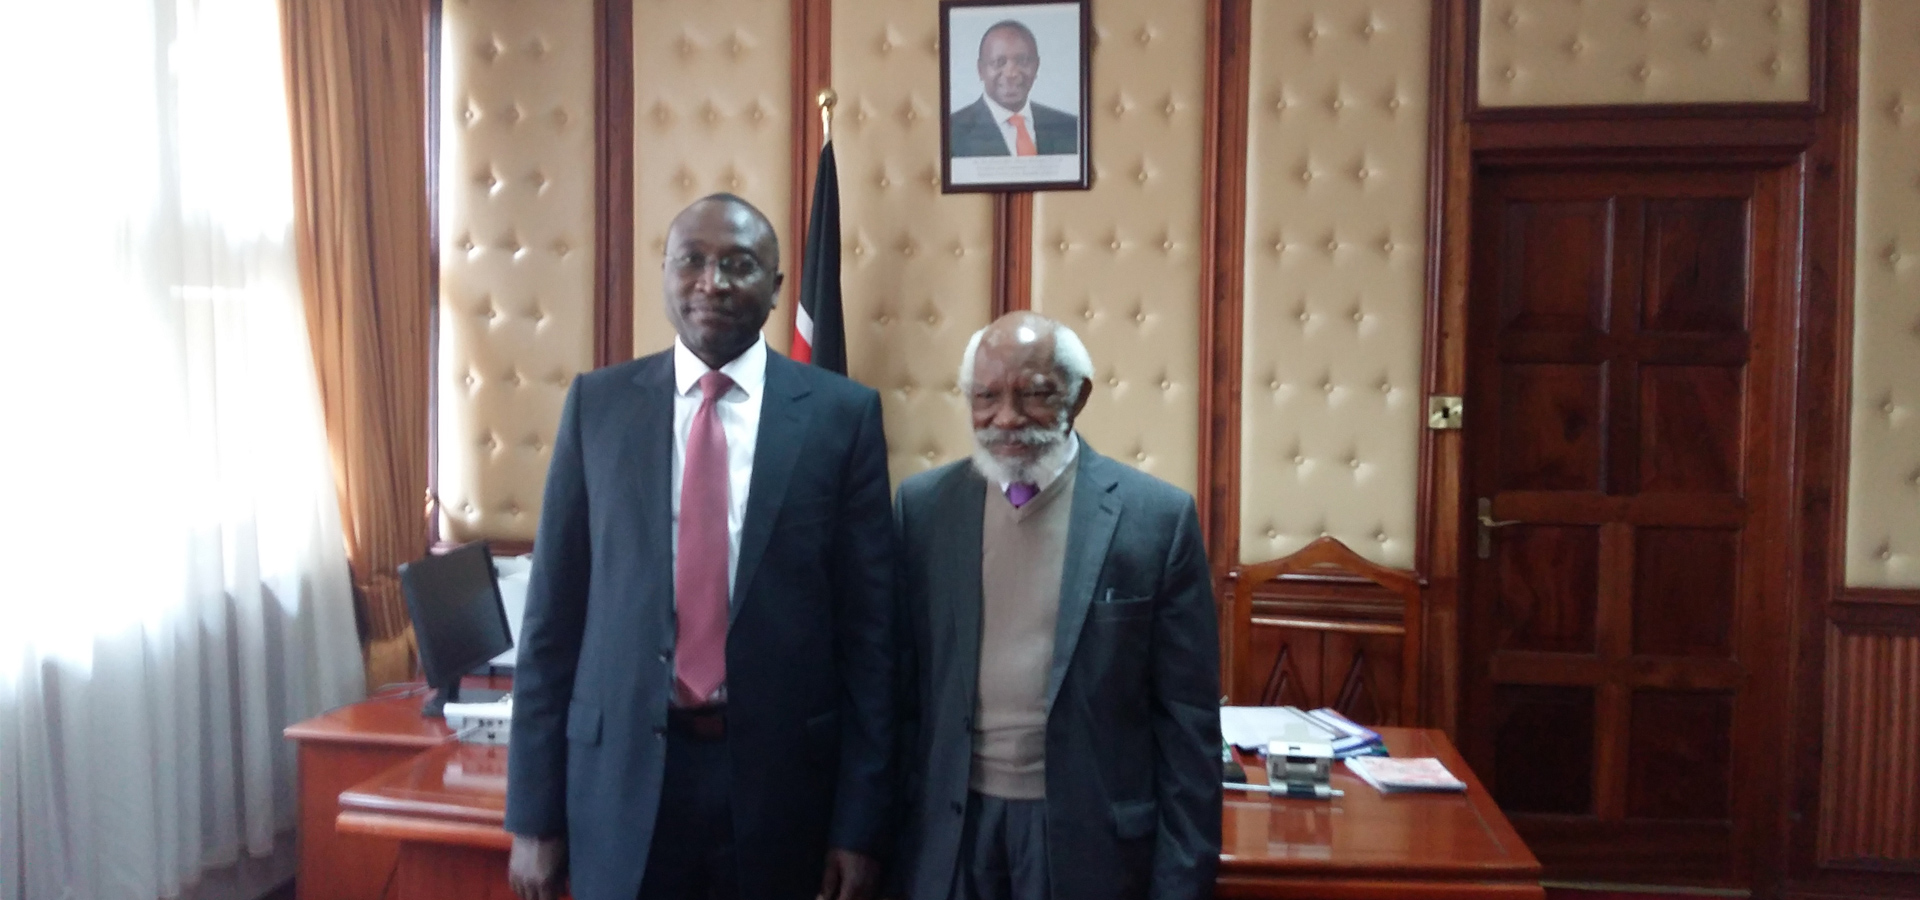 ILI-ACLE Faculty, Justice Crabbe with Clerk to Senate, Jeremiah Nyegenye